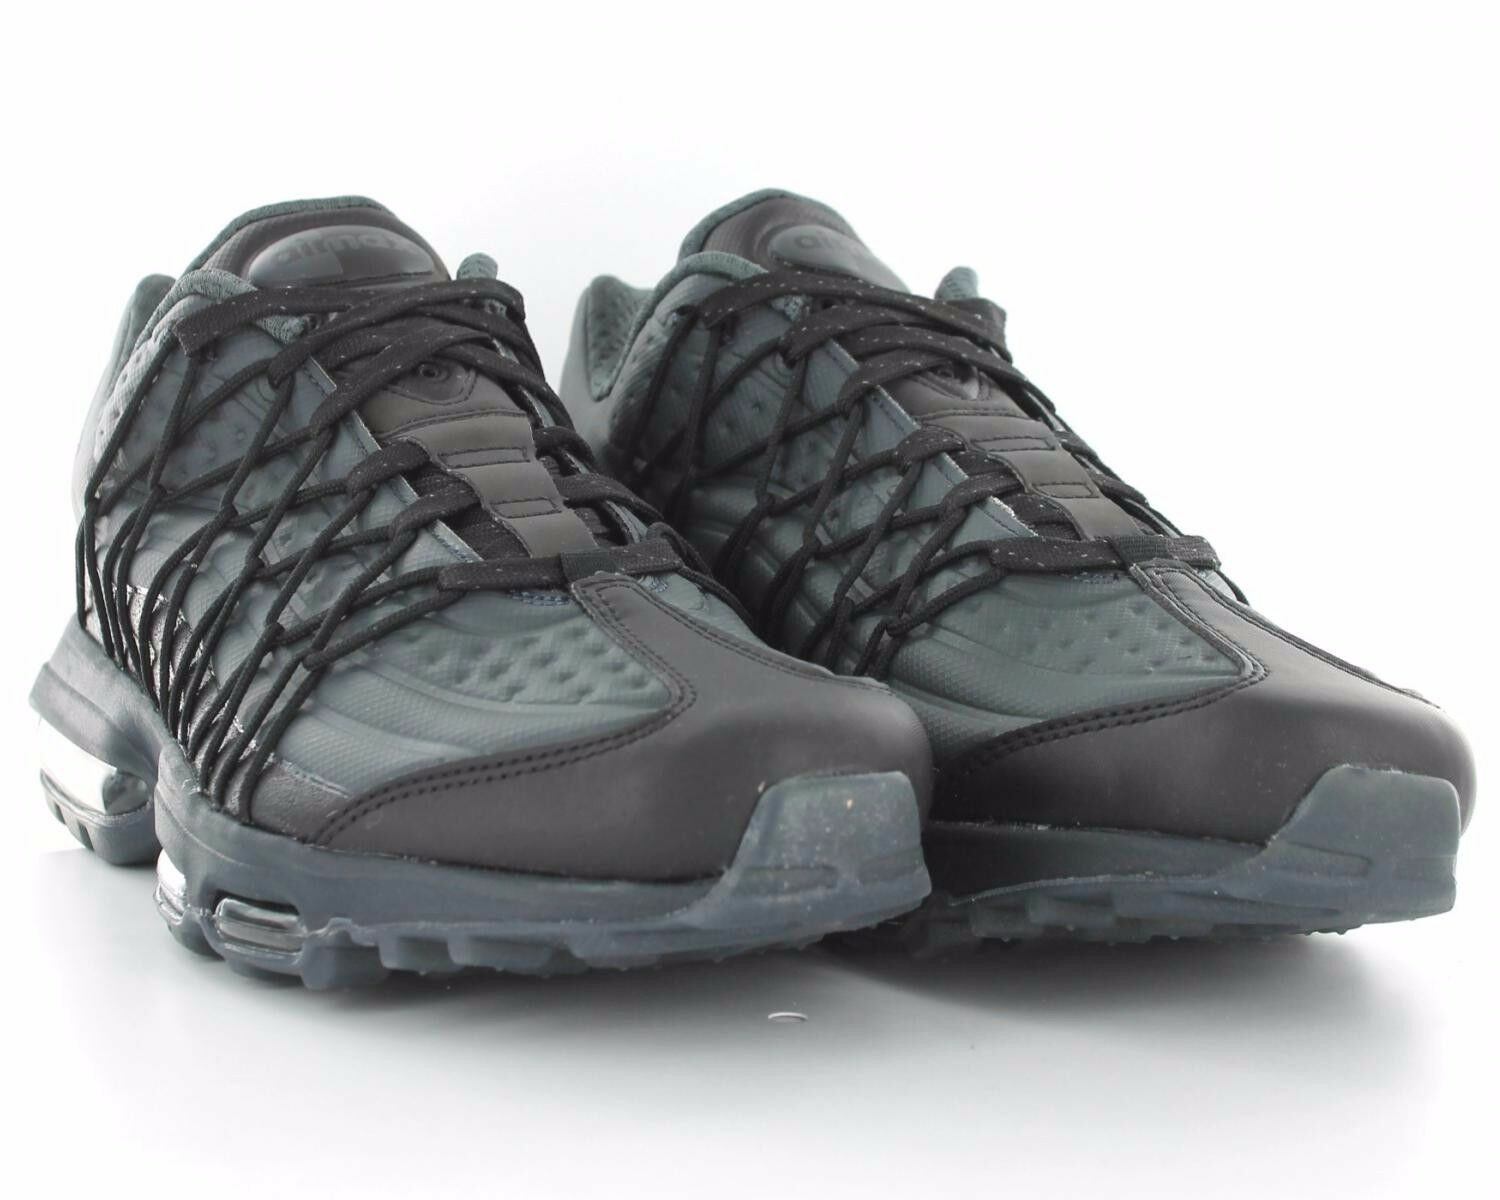 NIKE AIR MAX 95 ULTRA BLACK/GREY SIZE 10UK MEN TRAINERS SHOES SNEAKERS